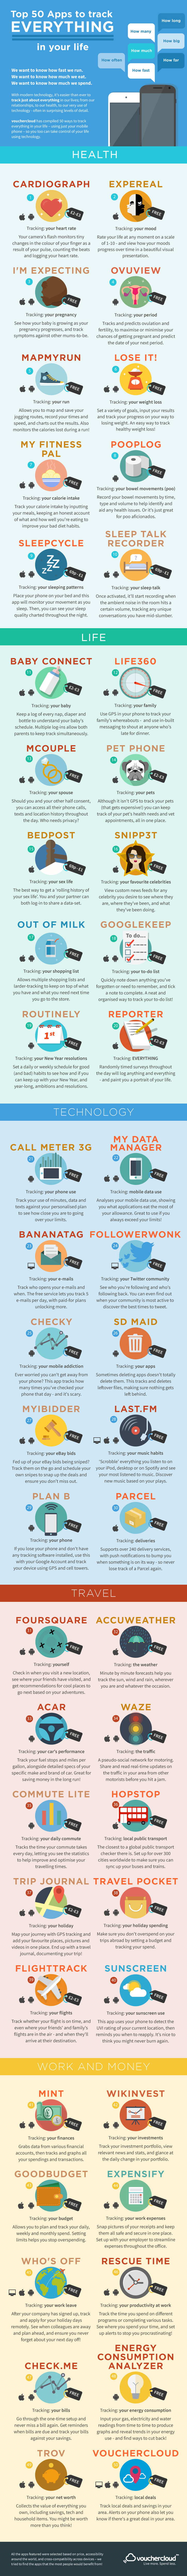 50 Apps to Track on Everything (Infographics)